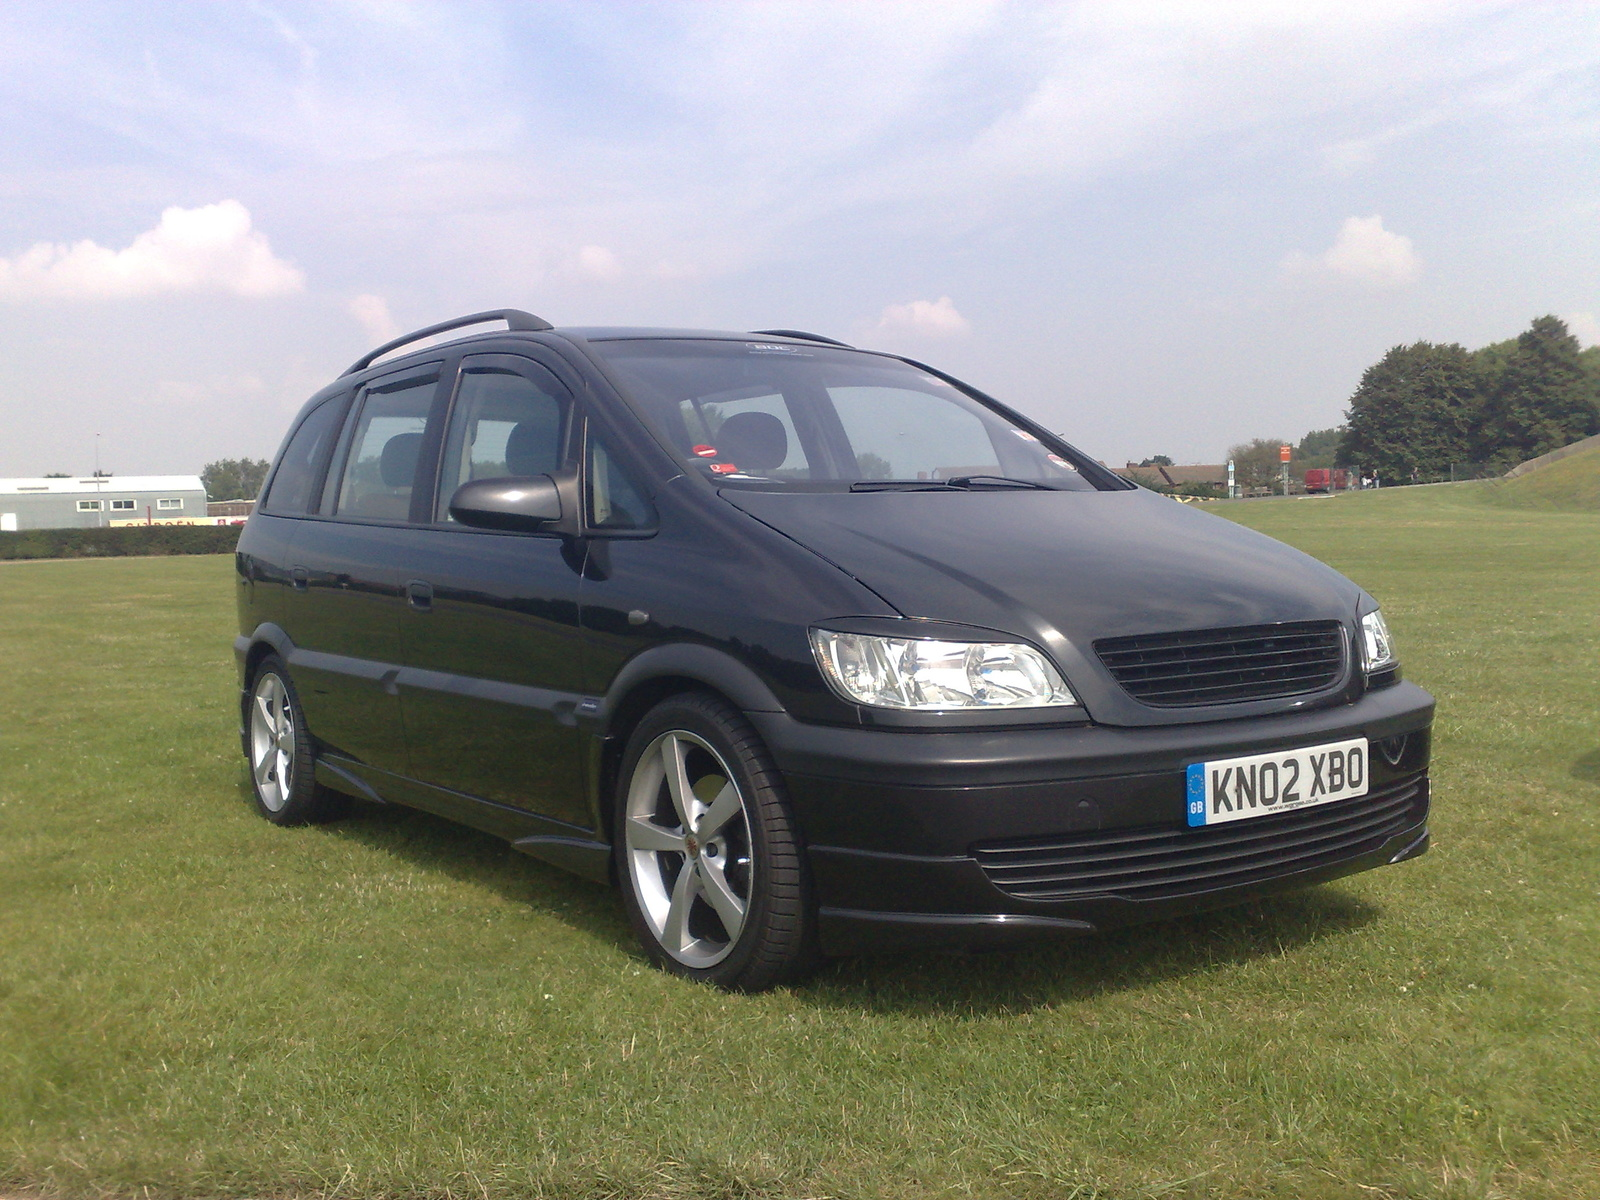 2002 vauxhall zafira exterior pictures cargurus. Black Bedroom Furniture Sets. Home Design Ideas